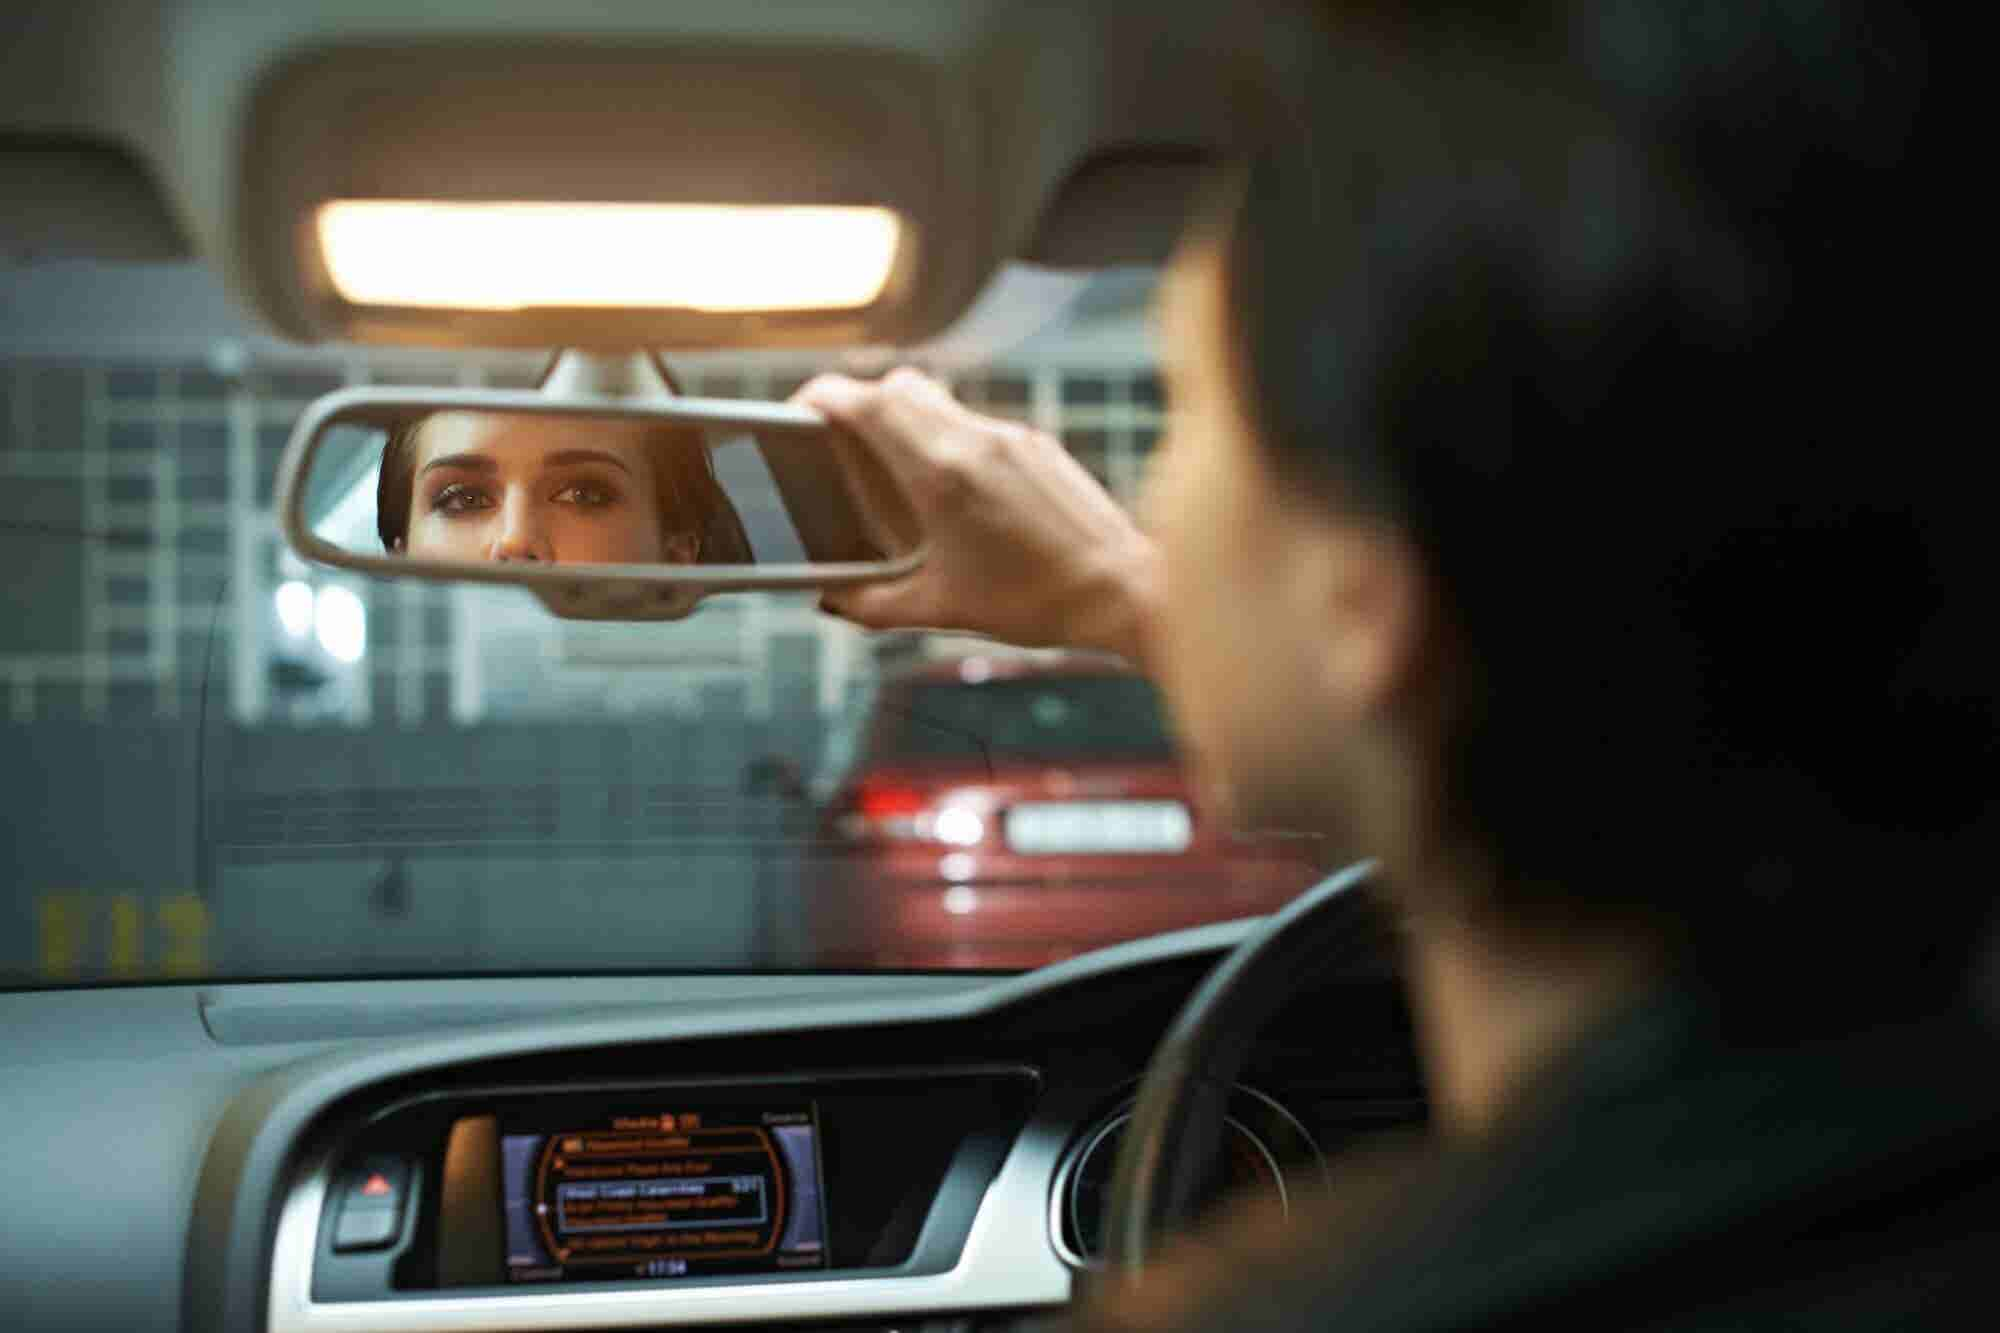 Me, Myself and AI: Is That My Privacy in the Rearview Mirror?